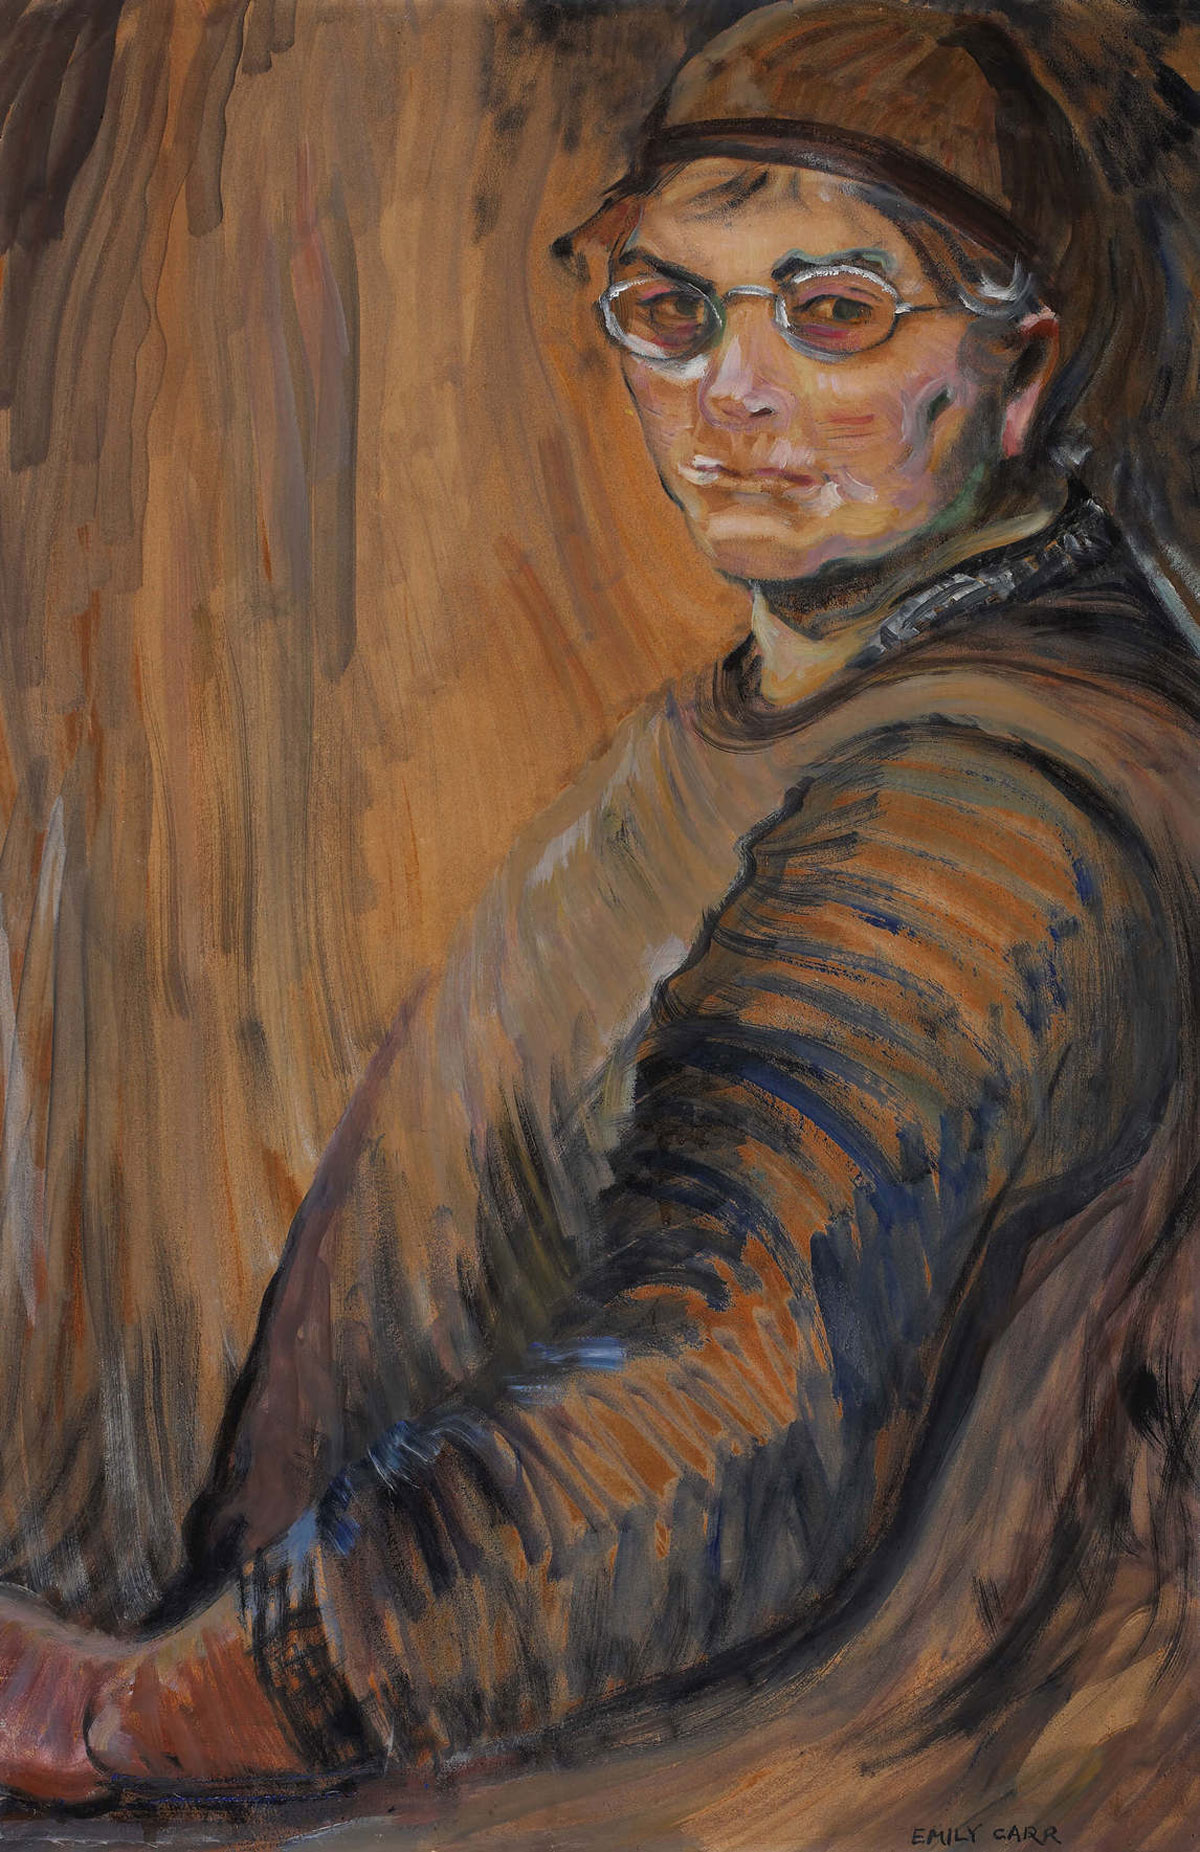 self-potrait by Emily Carr, 1938/1939